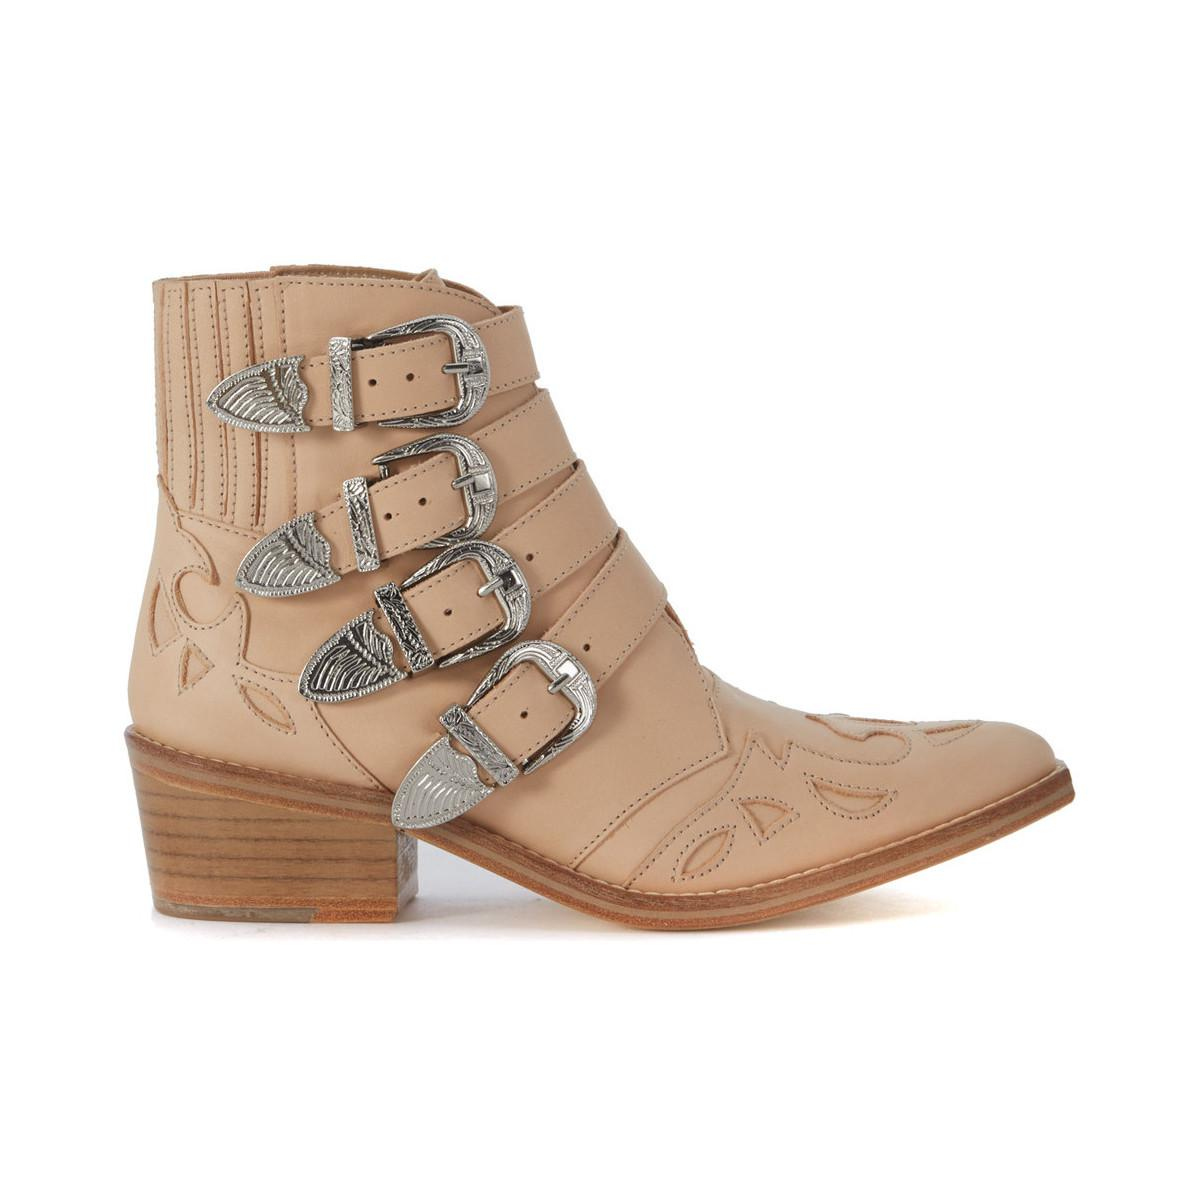 Original TOGA PULLA Texan suede women's Low Boots in Sale Low Price Fee Shipping Discount Fashionable Largest Supplier For Cheap Sale Online v9SyCawS4H